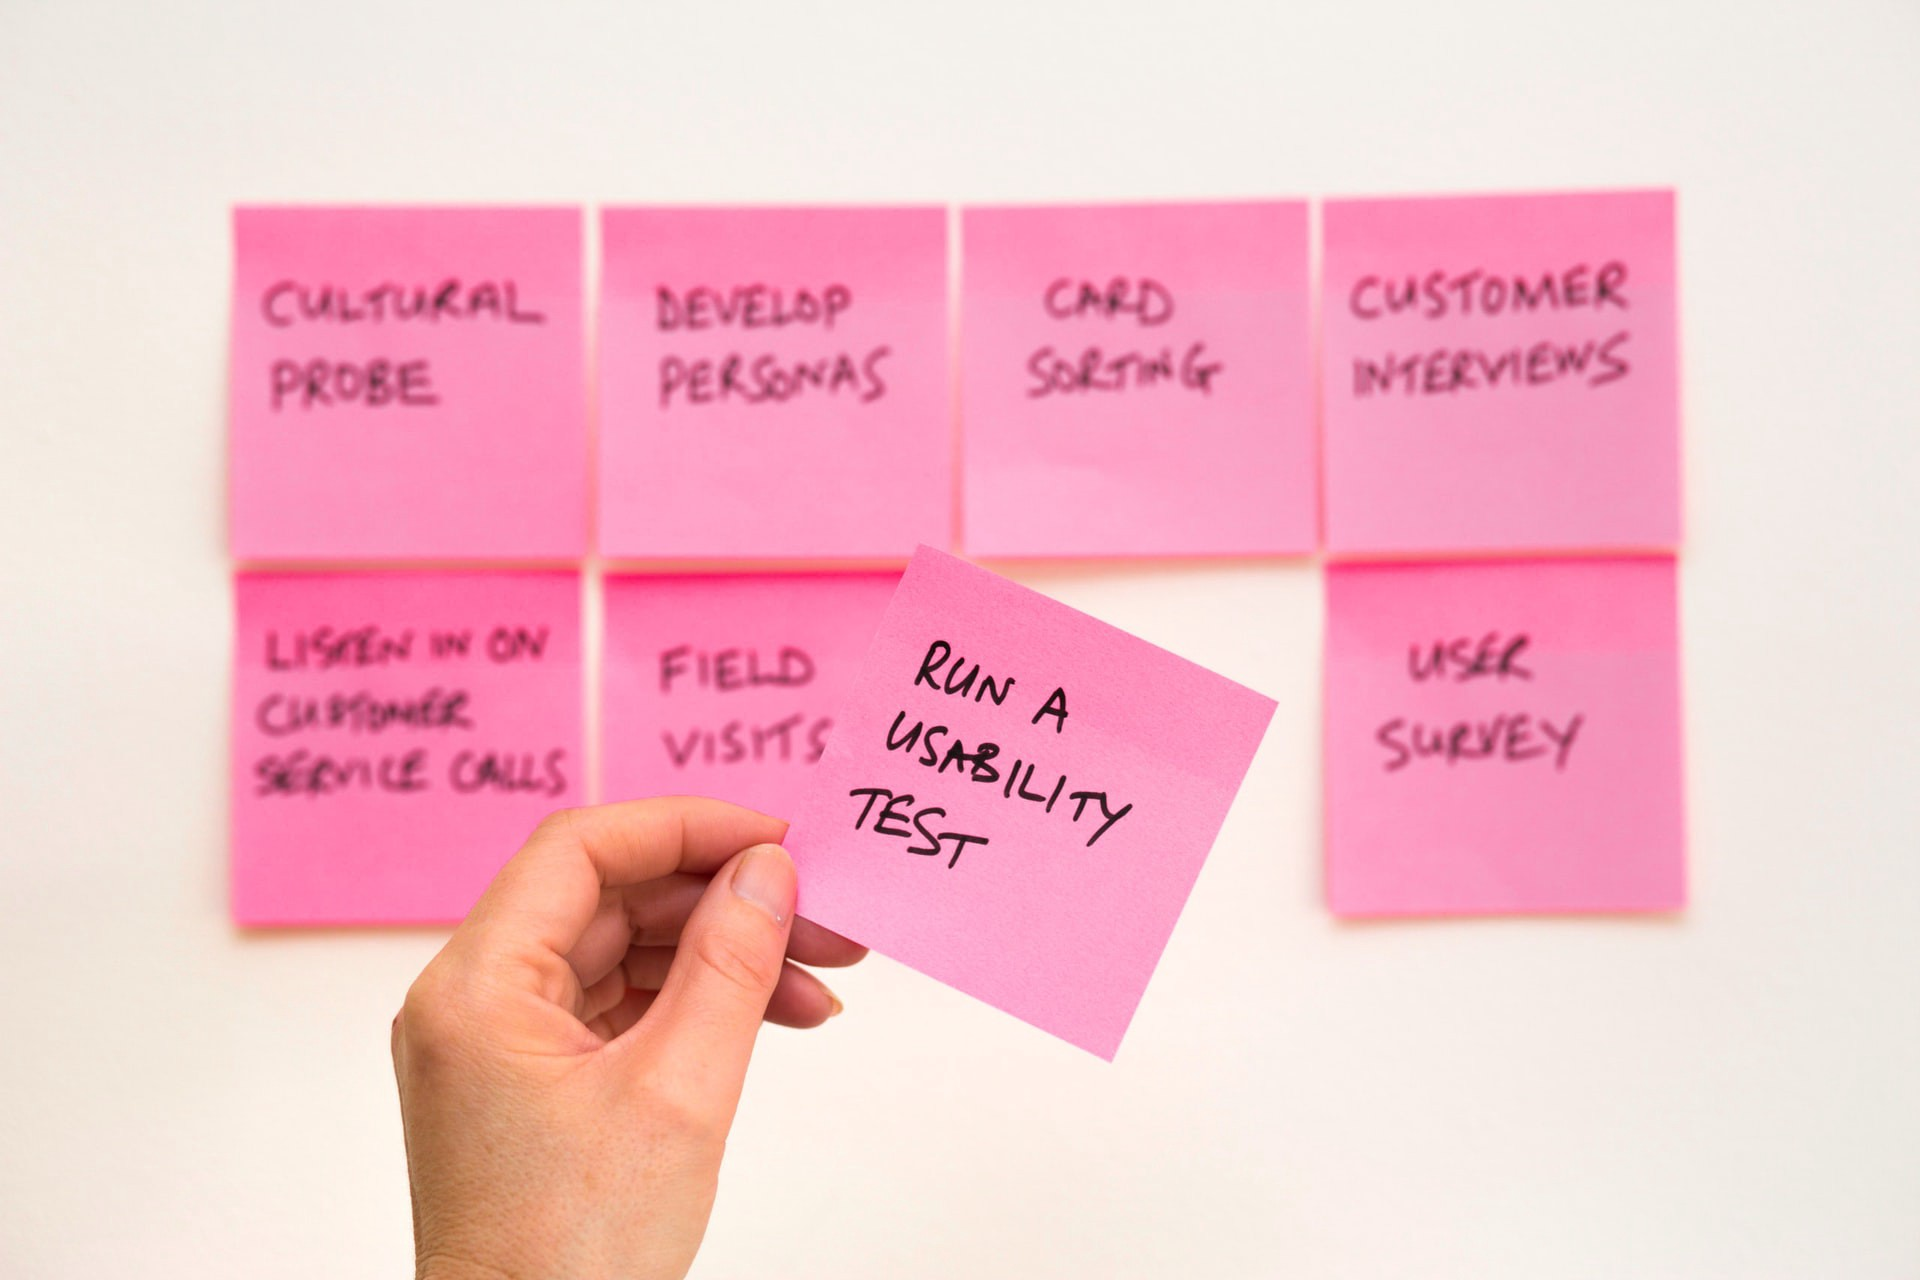 """Person holding a Post-it note that says """"Run a usability test"""", in front of Post-its with other user testing methodologies"""